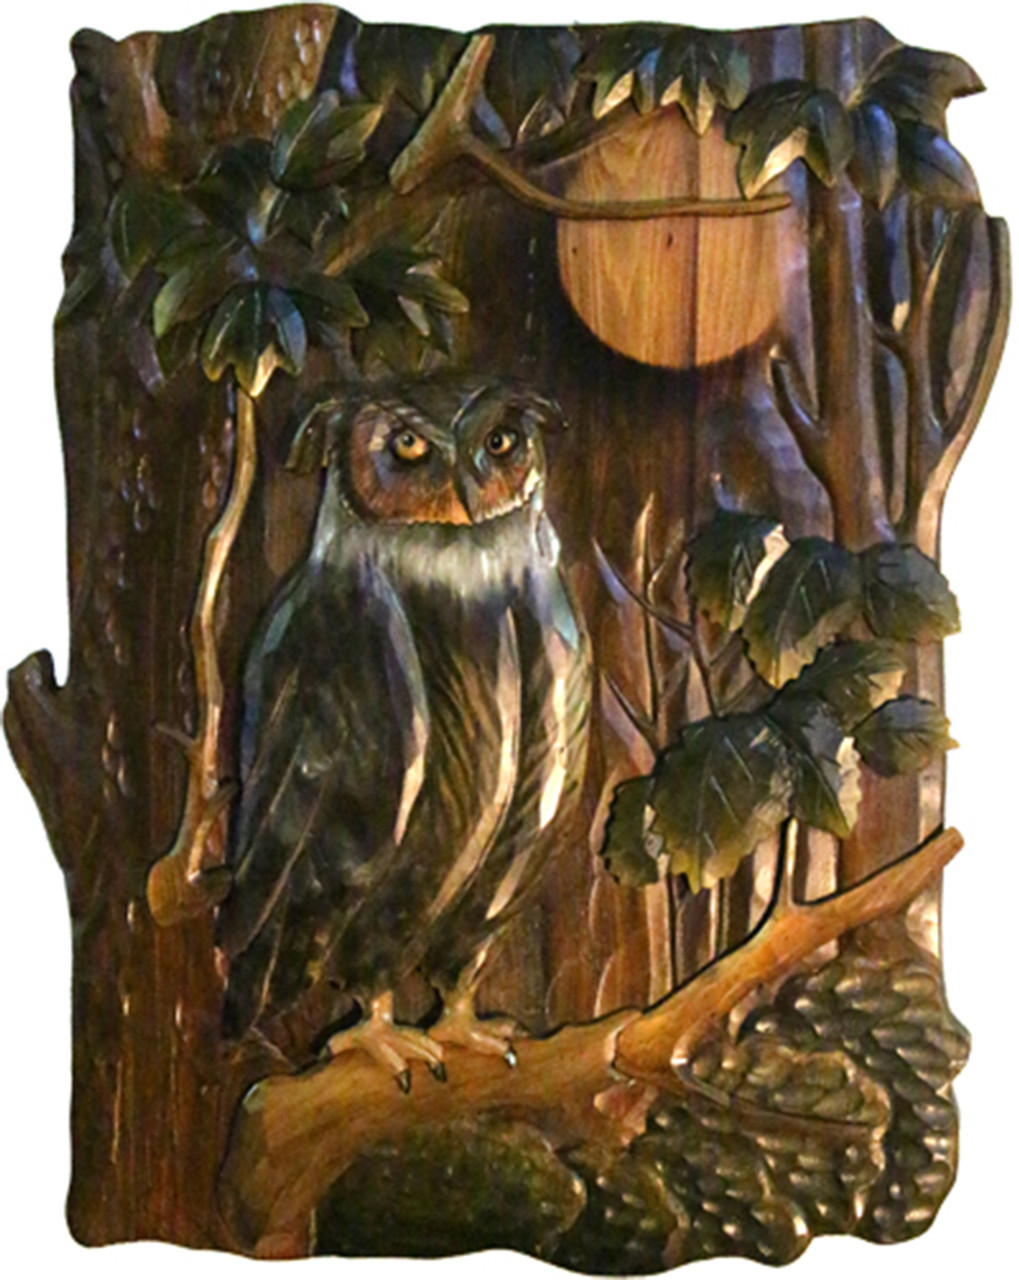 Owl Hand Crafted Intarsia Wood Art Wall Hanging 18 X 26 X 2 5 Inches